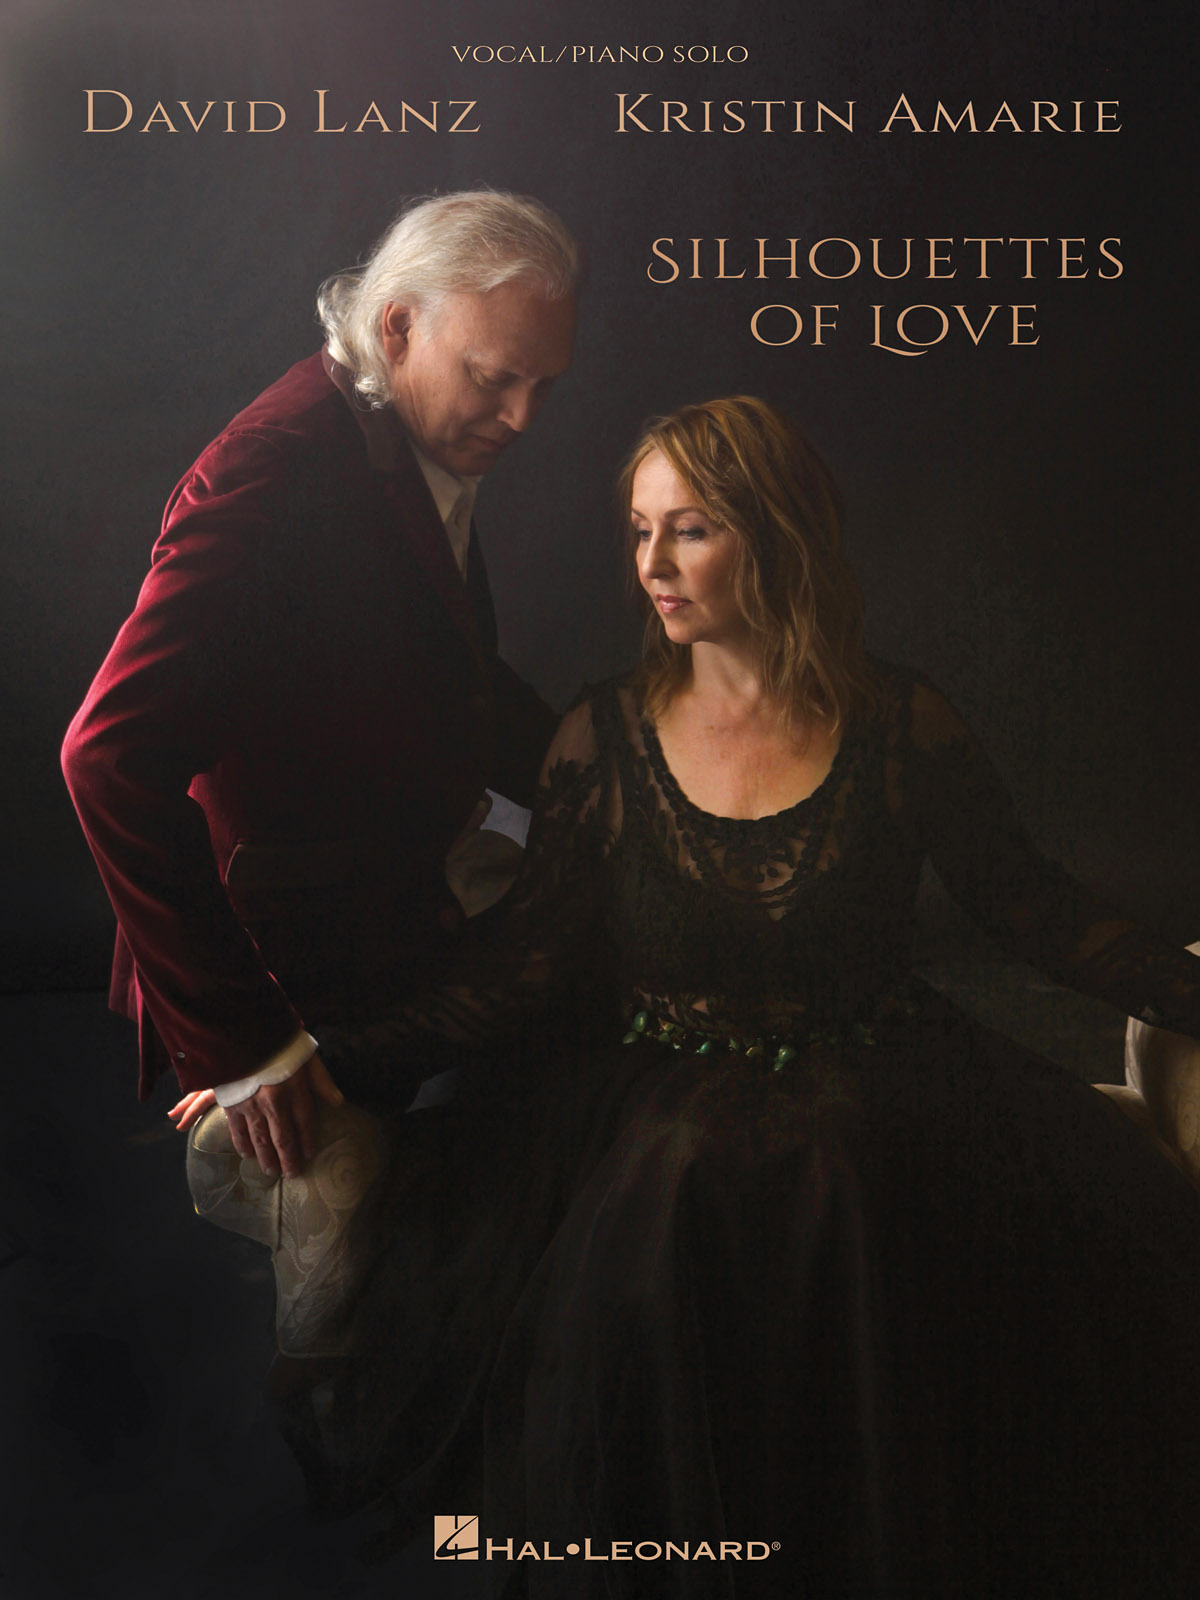 David Lanz Kristin Amarie: David Lanz & Kristin Amarie - Silhouettes of Love: